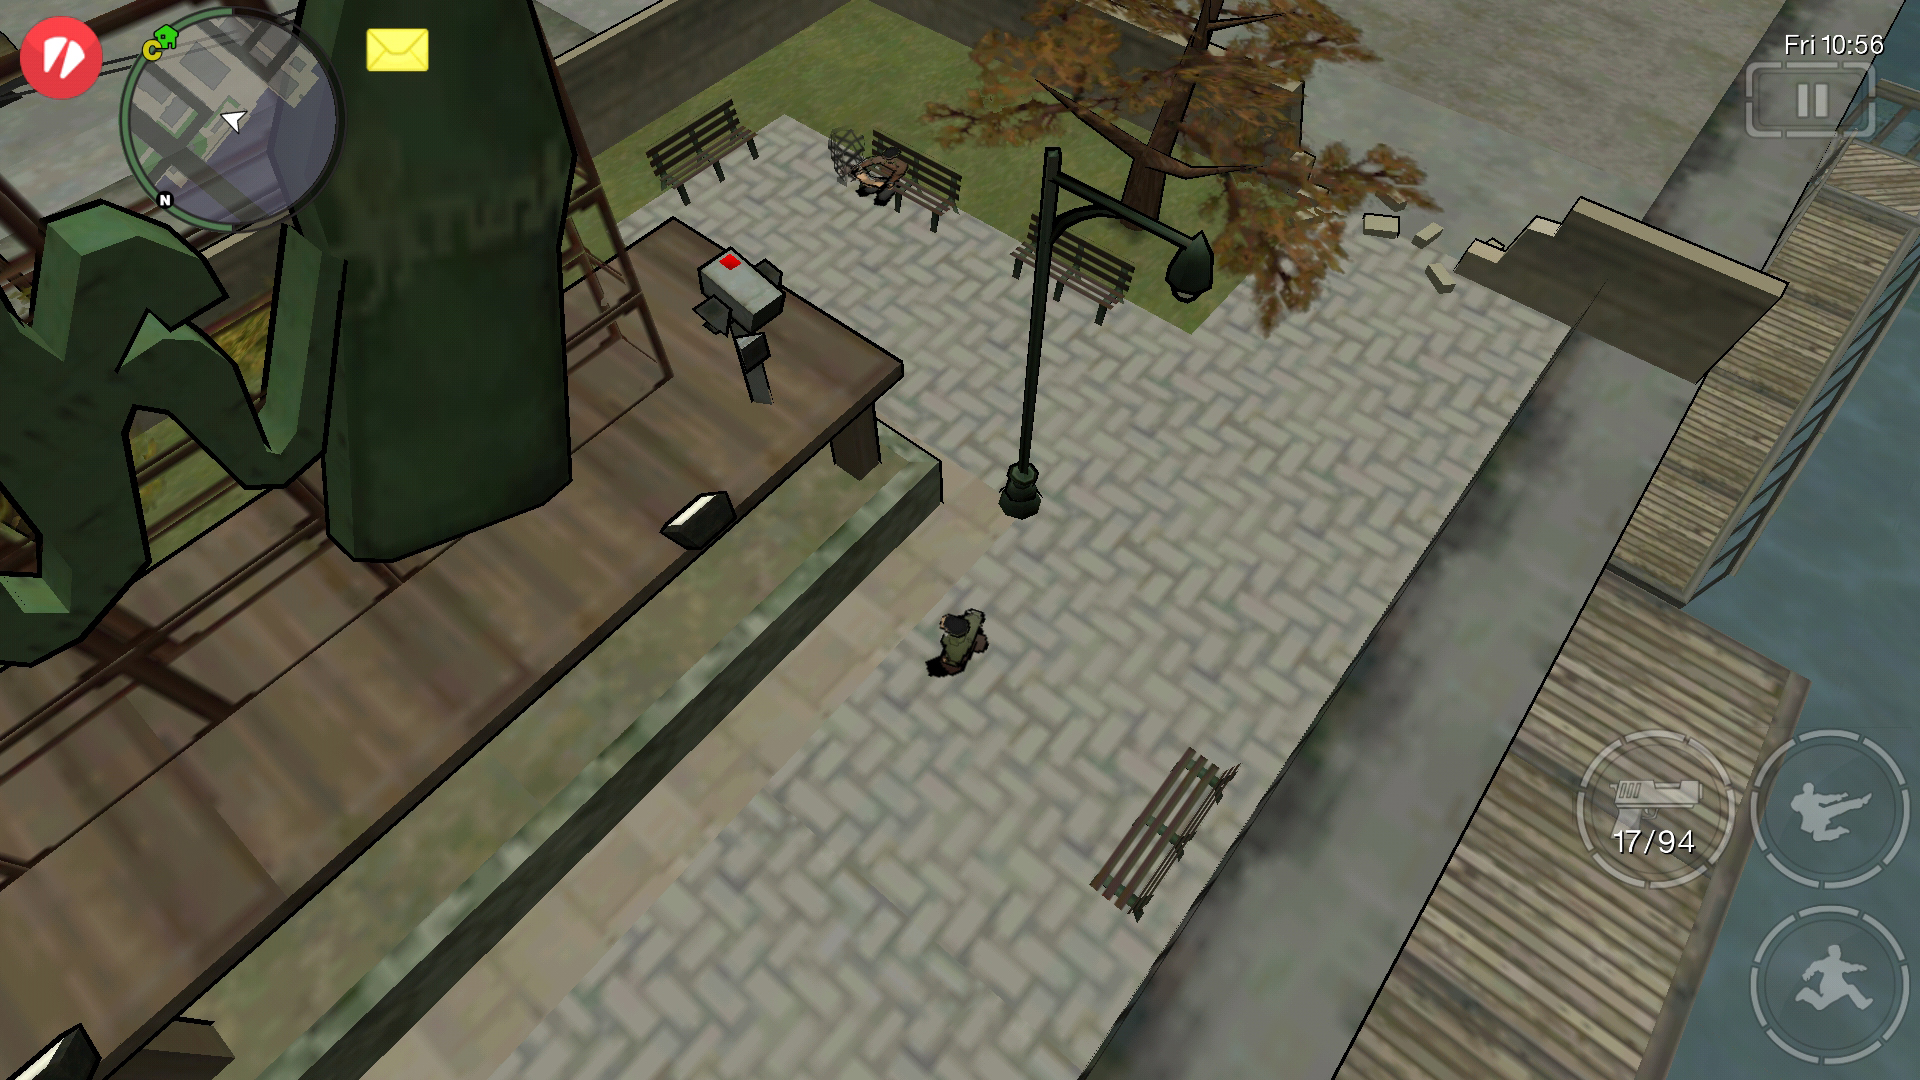 Security Cameras on GTA Chinatown Wars